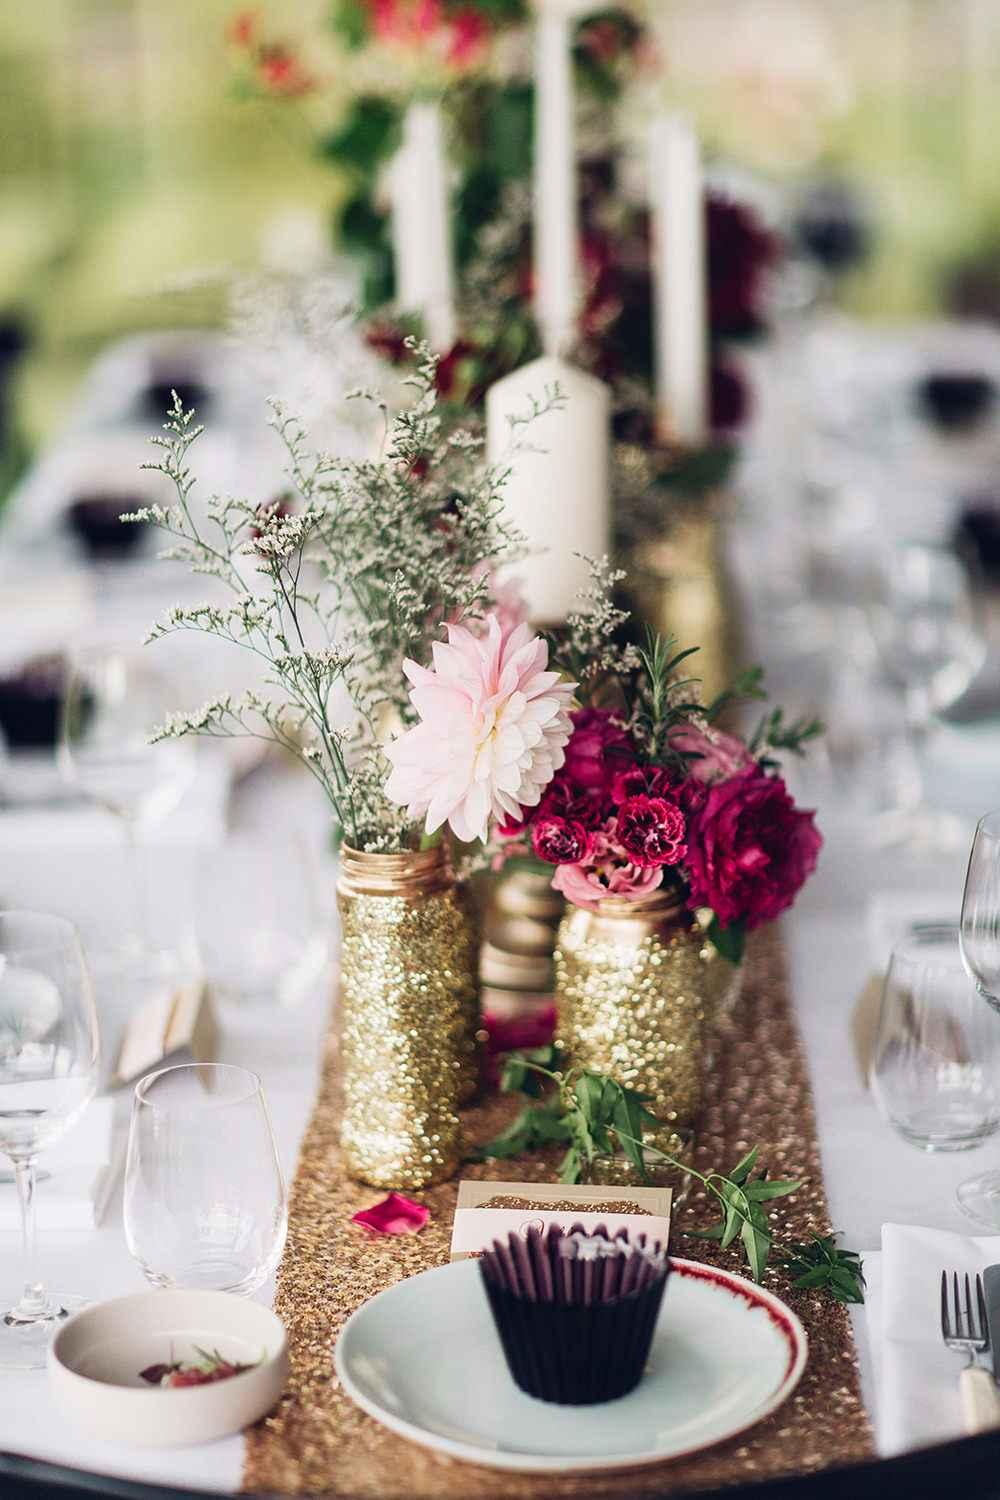 Golden wedding decoration: 60 ideas with photos to inspire 47